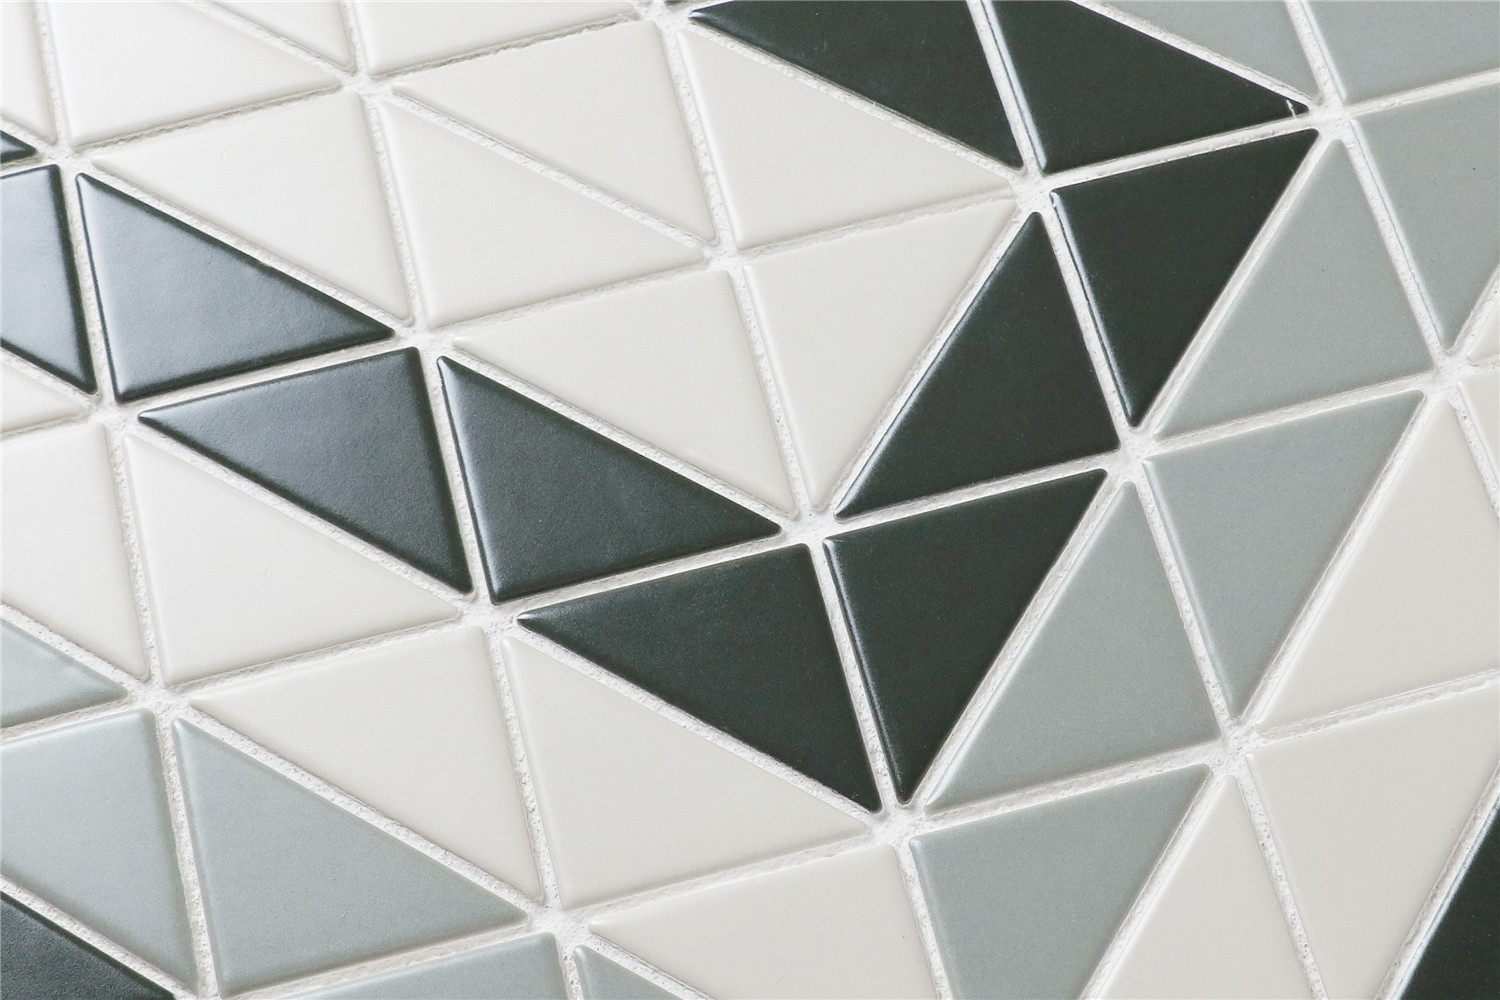 Chino hill rectangle 2 triangle g tile floor mosaic